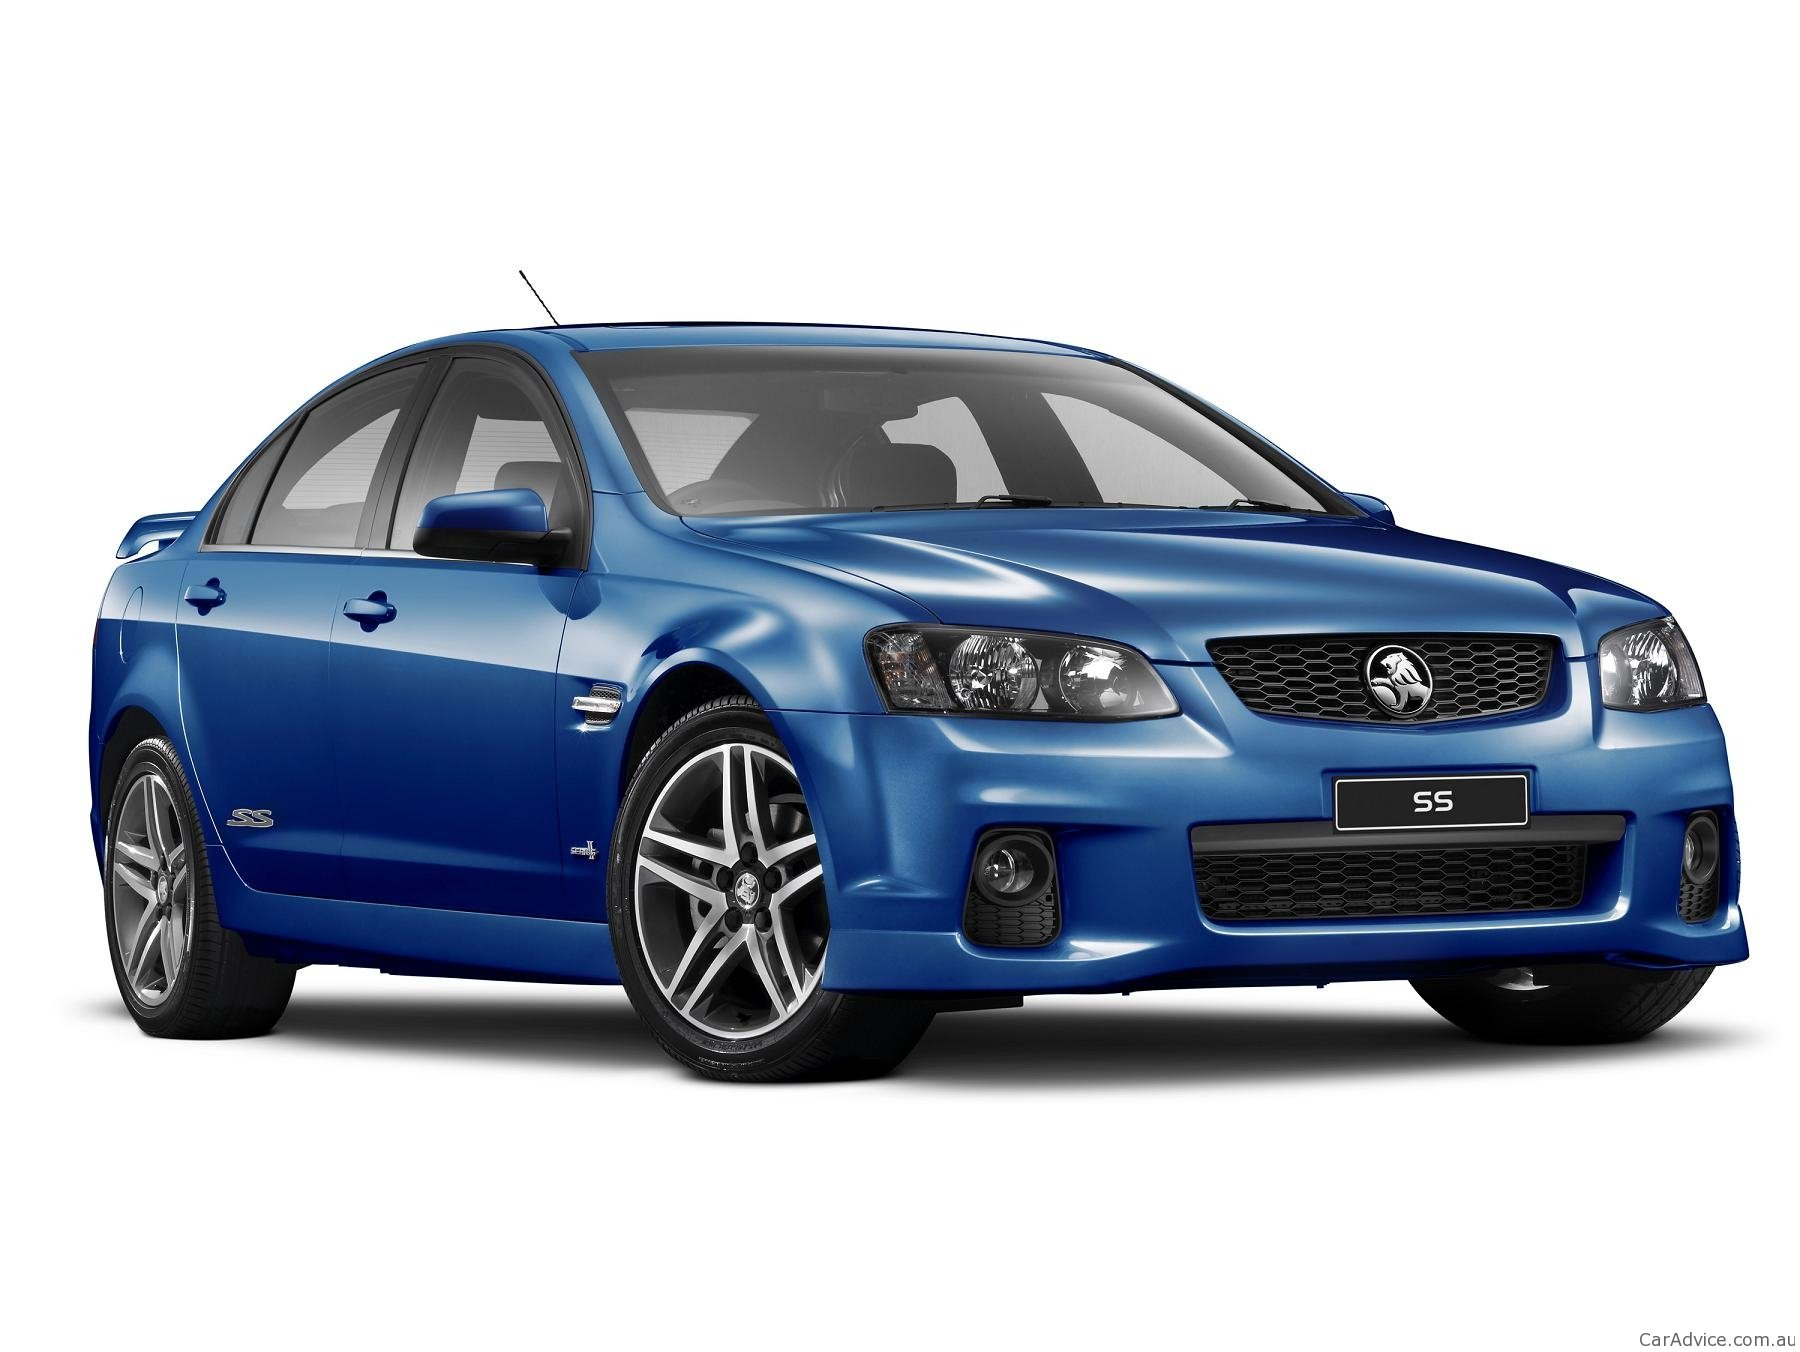 2011 Holden Commodore Ve Series Ii Gets Flex Fuel E85 Compatibility Photos Caradvice